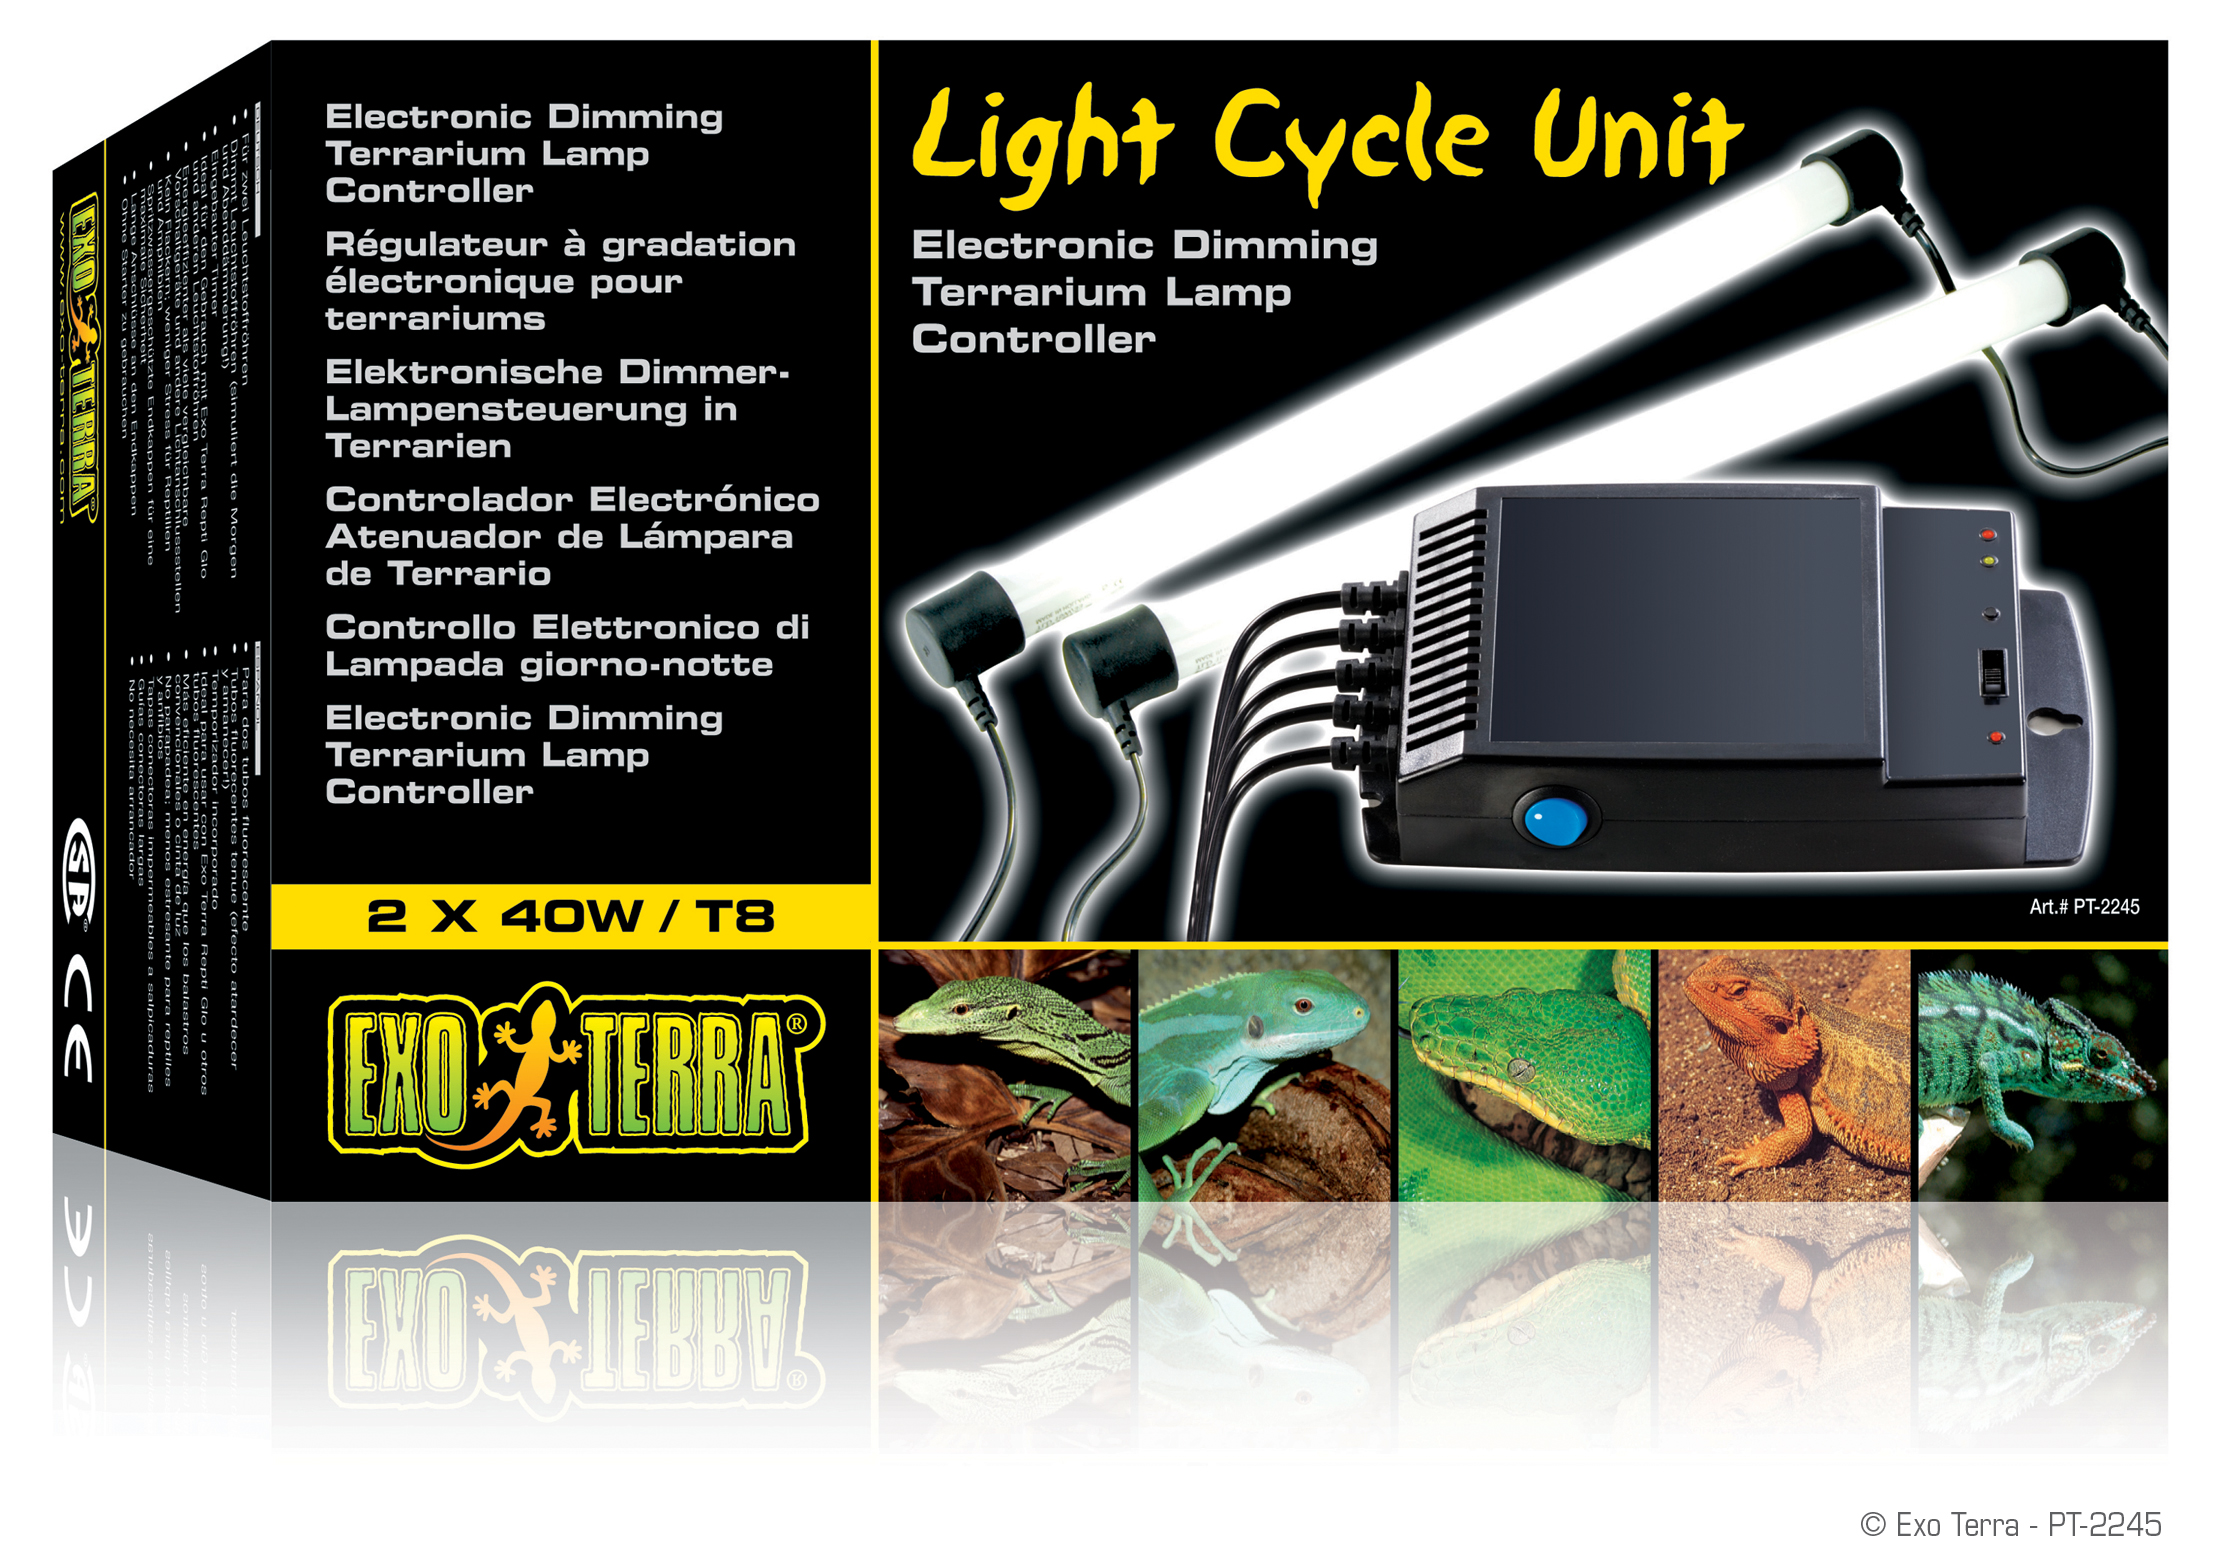 ... High Res Img ...  sc 1 st  Exo Terra & Exo Terra : Light Cycle Unit / Electronic Dimming Terrarium Lamp ...